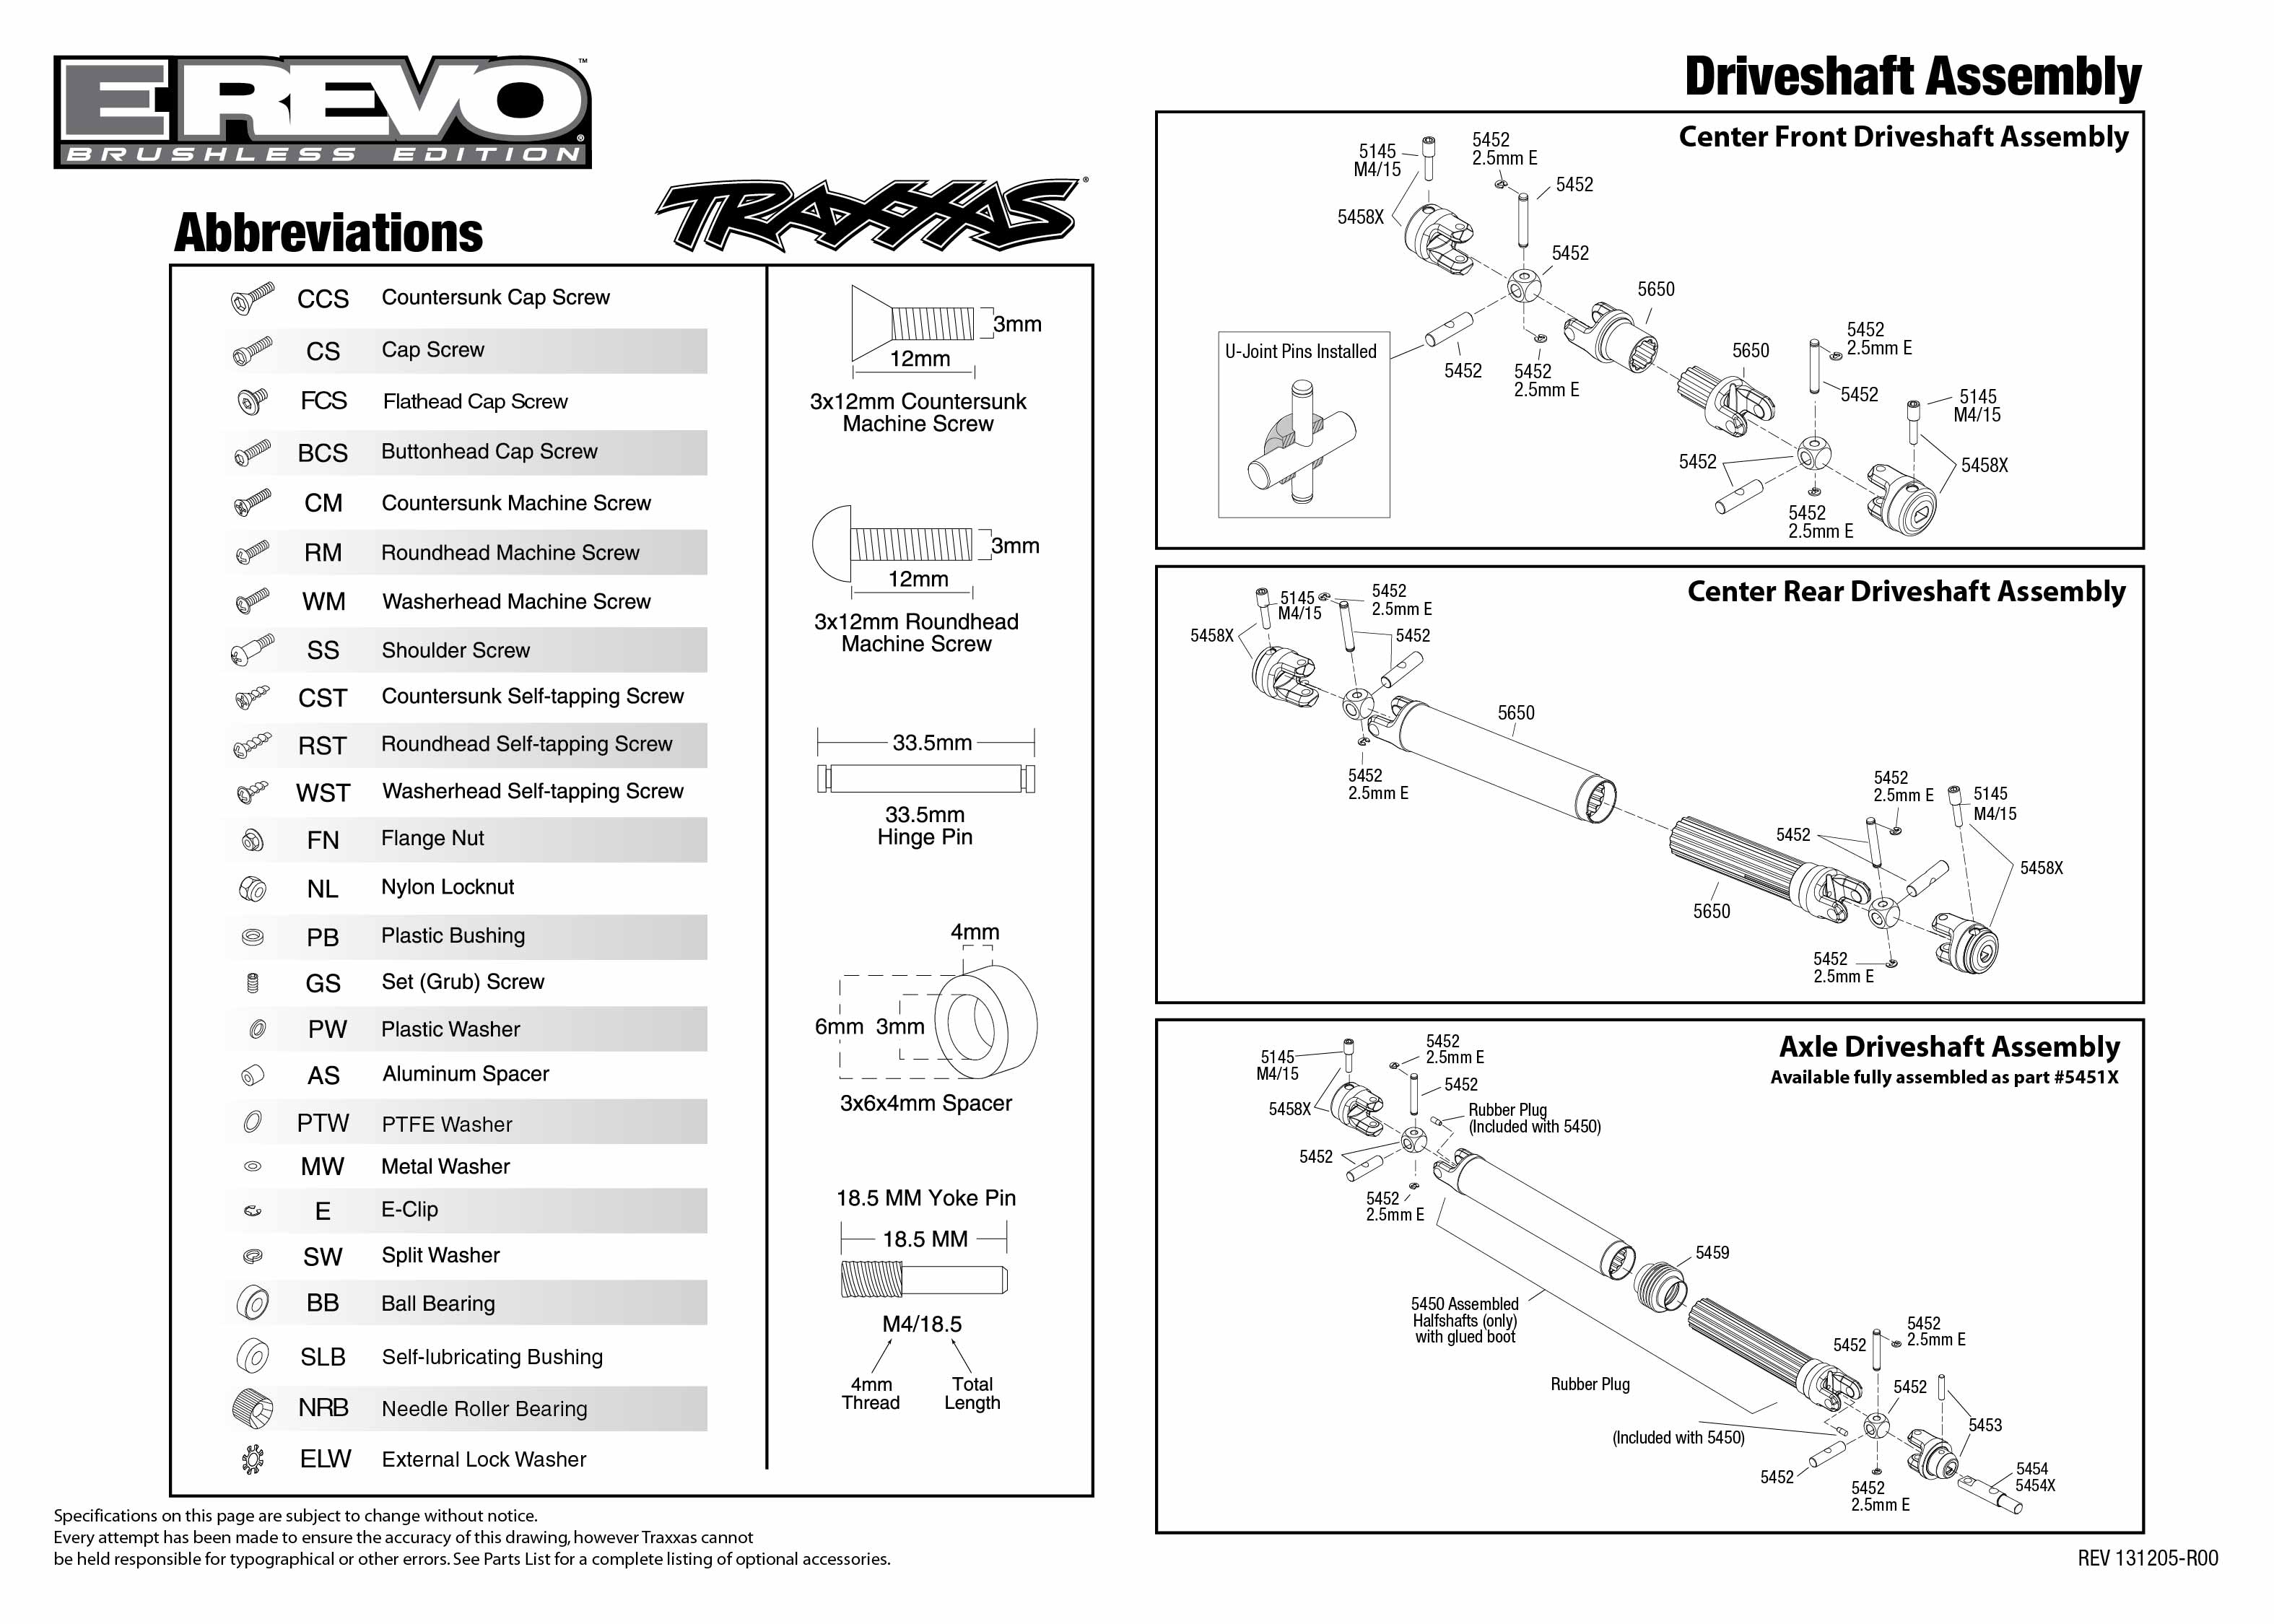 E Revo Brushless W Tqi 24ghz Docking Base 56085 Driveshafts Wiring Diagram Use Magnifier Buttons To Zoom Exploded View Click Part Numbers For Details Or Add Cart